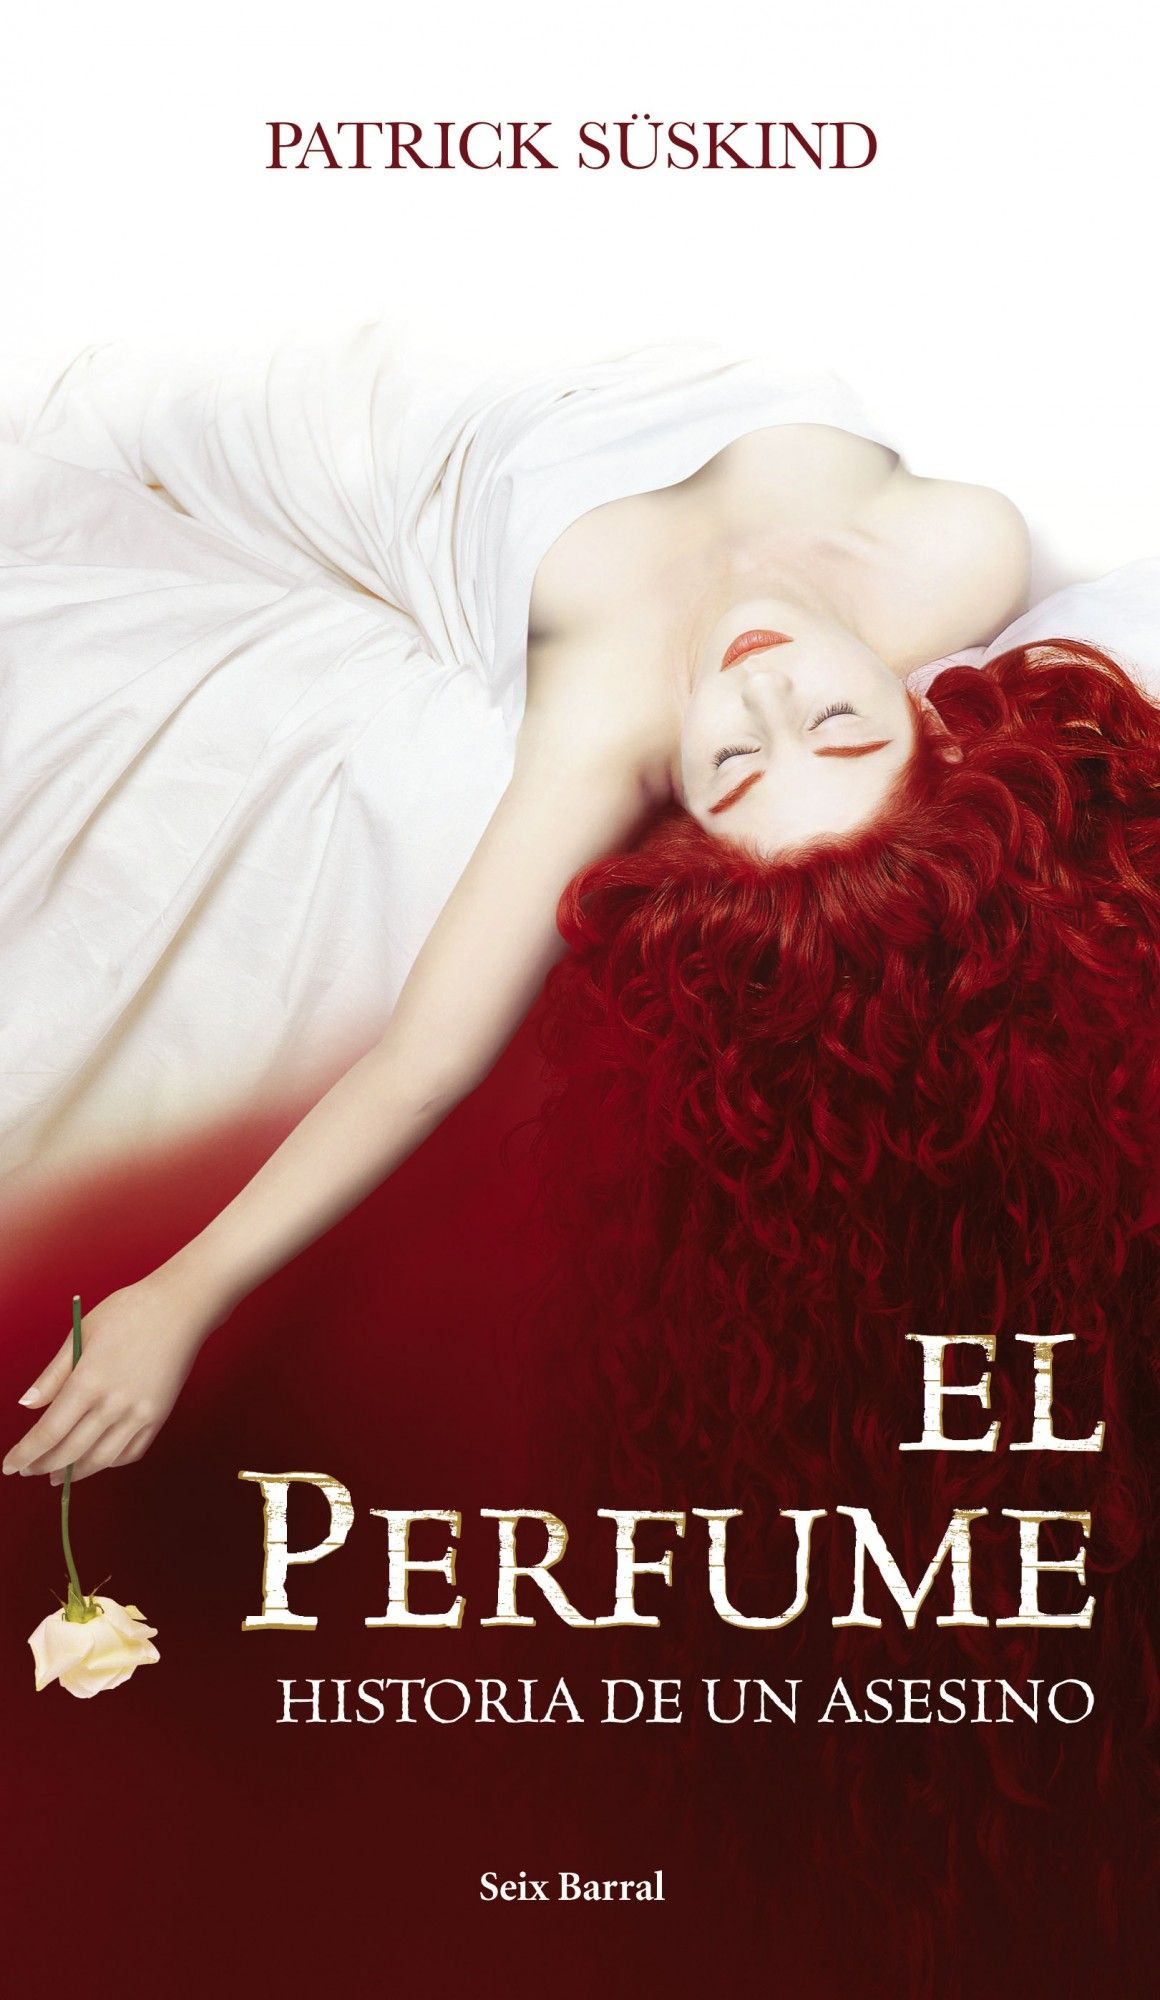 Libro El Perfume El Perfume De Patrick Suskind Books Worth Reading